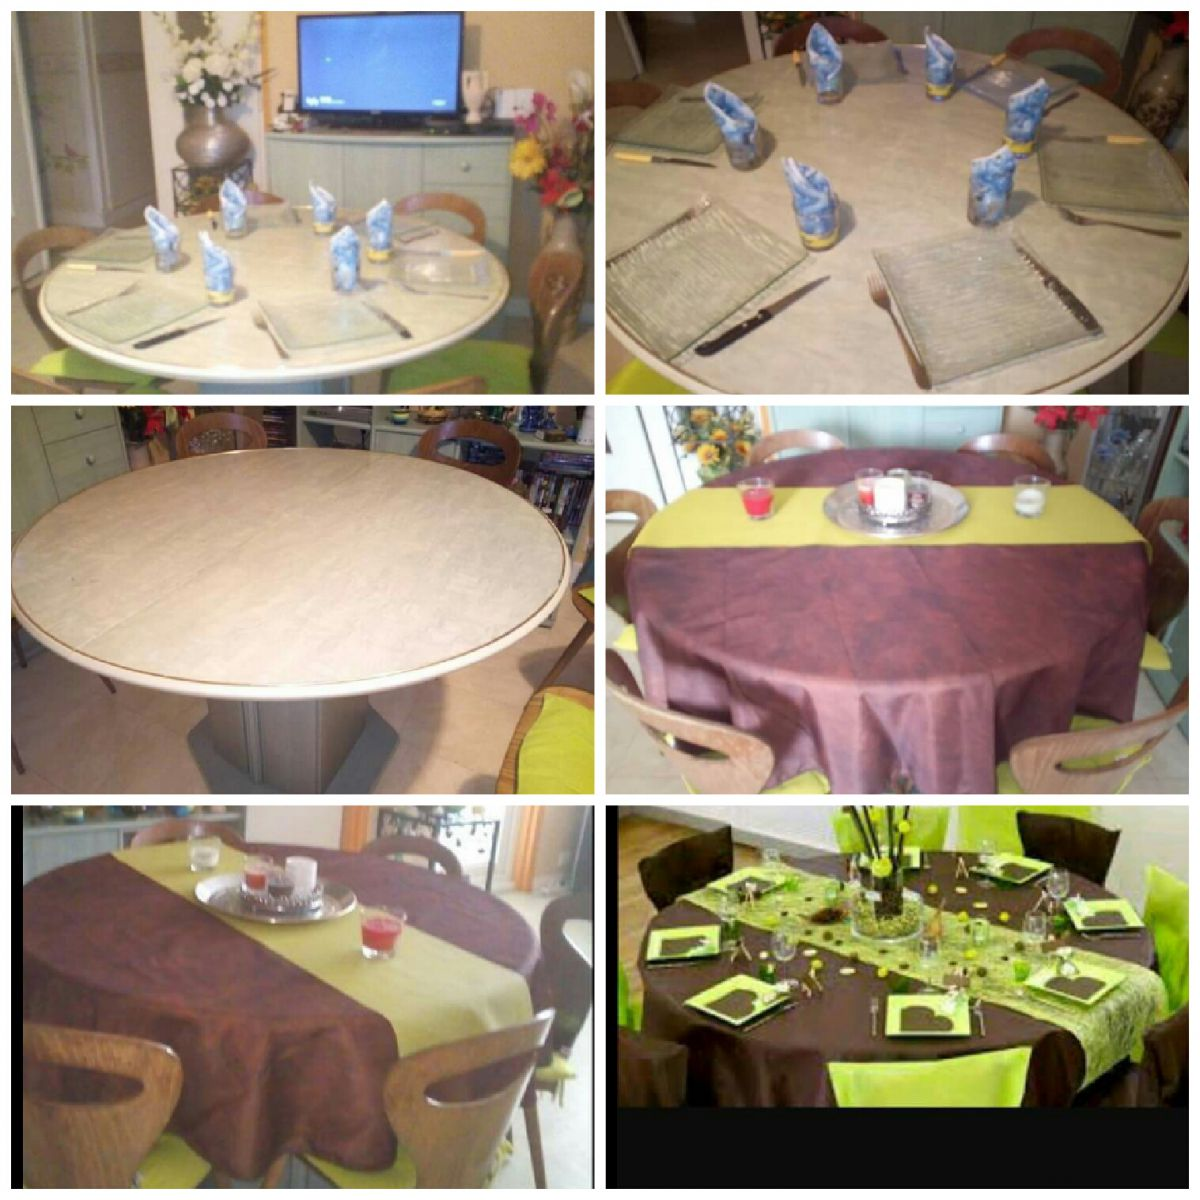 Grande table ronde 6 personnes luckyfind - Table ronde 6 personnes ...